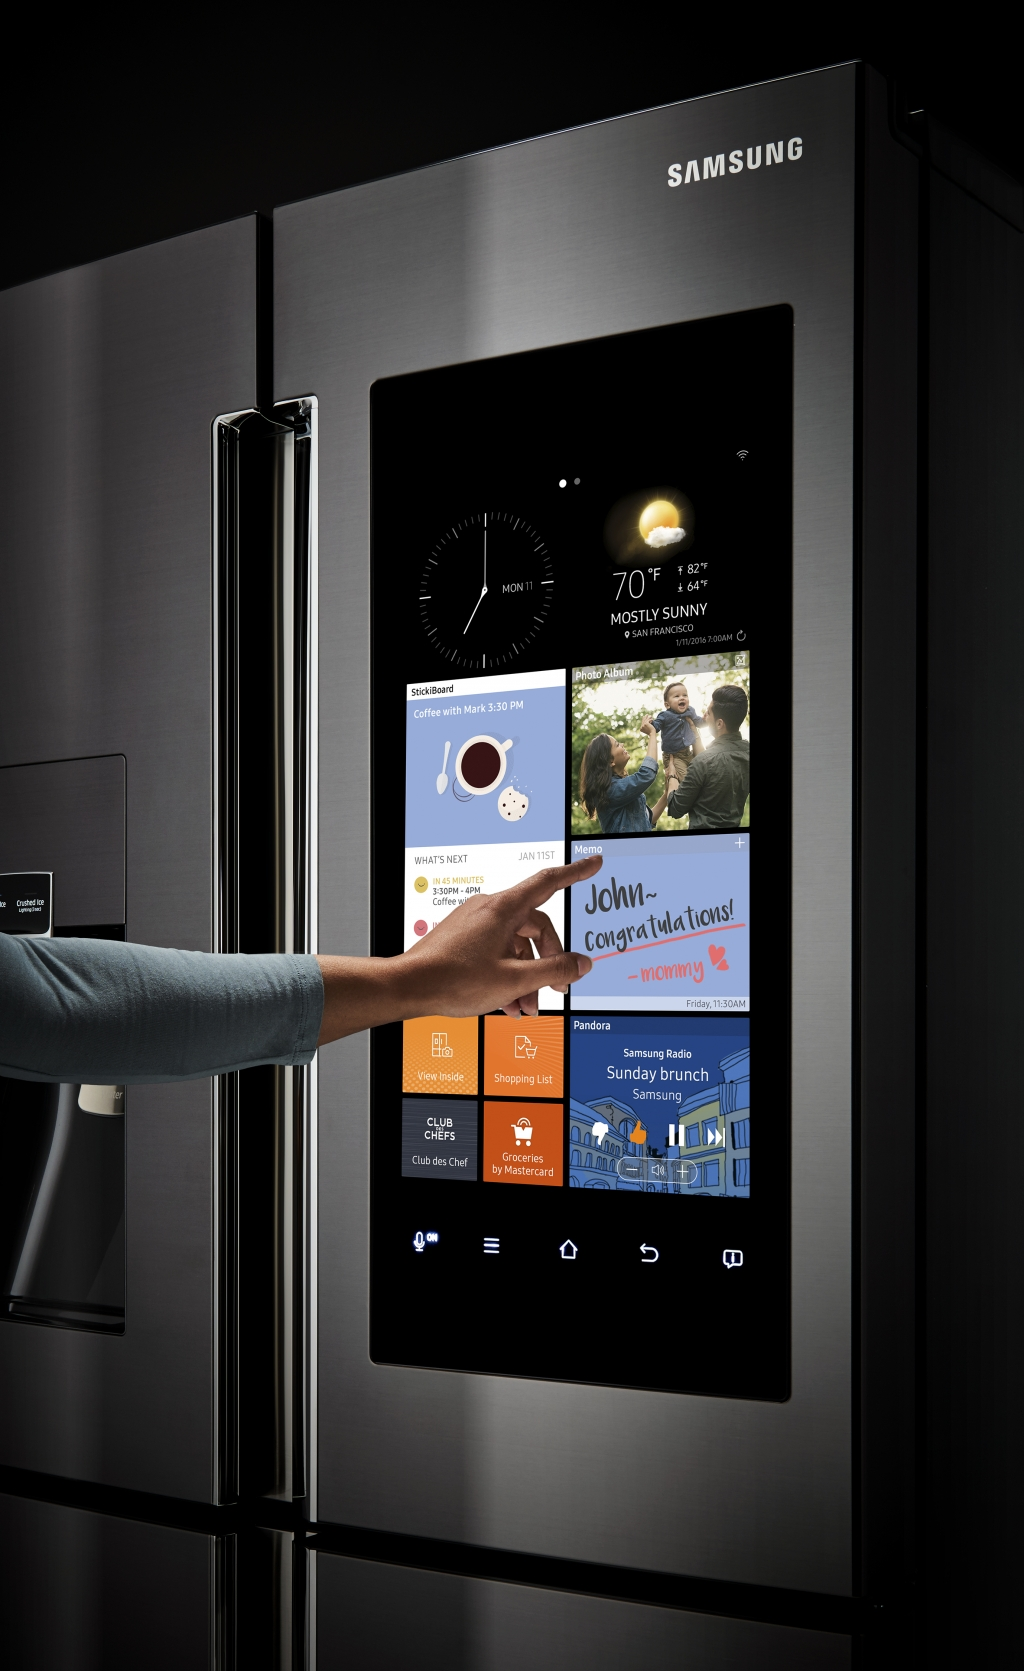 Samsung Reinvents the Refrigerator